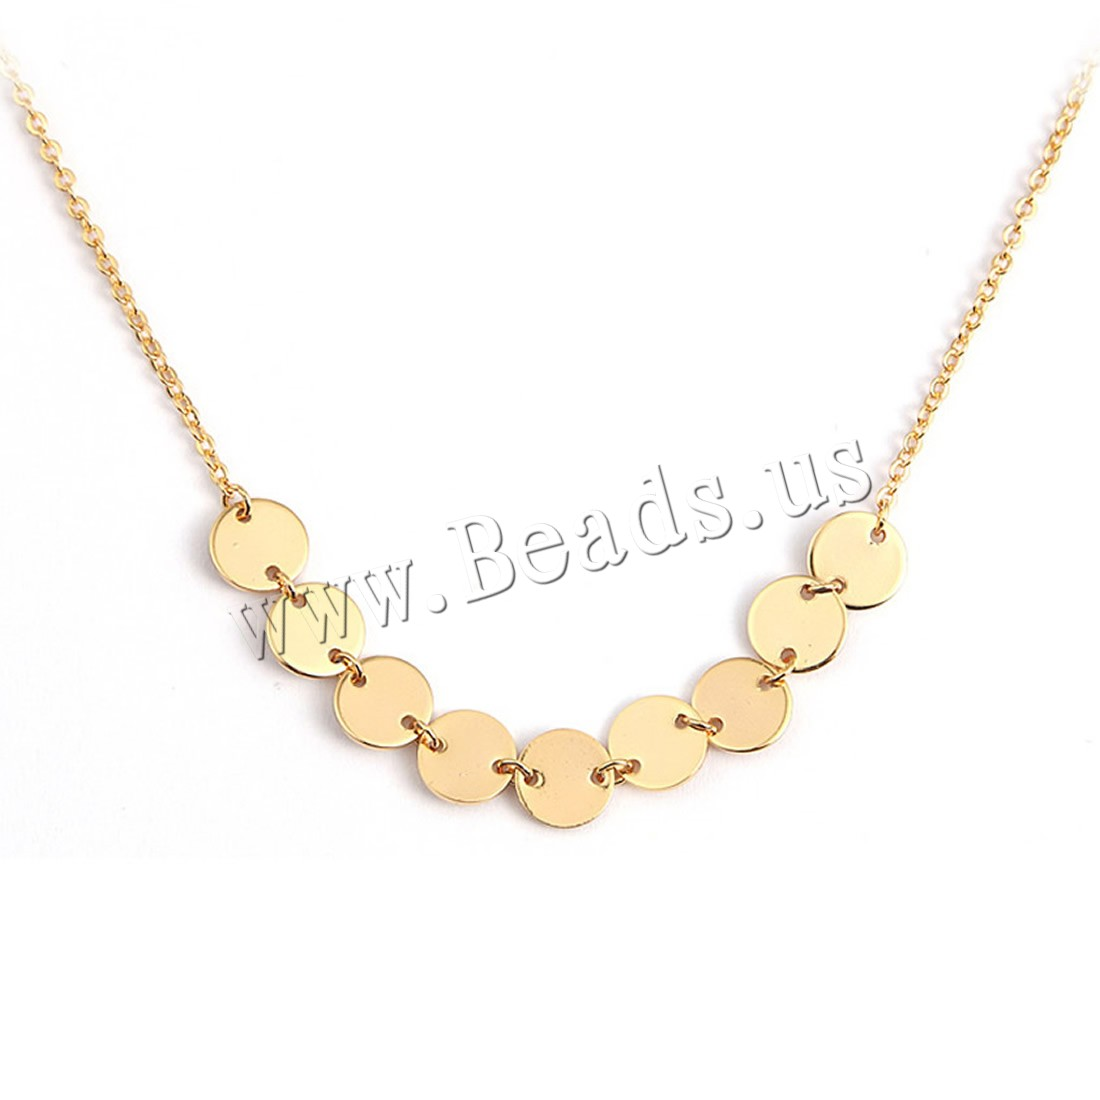 Buy Brass Necklace 5cm extender chain Flat Round 18K gold plated oval chain & woman nickel lead & cadmium free 8mm Sold Per Approx 17 Inch Strand